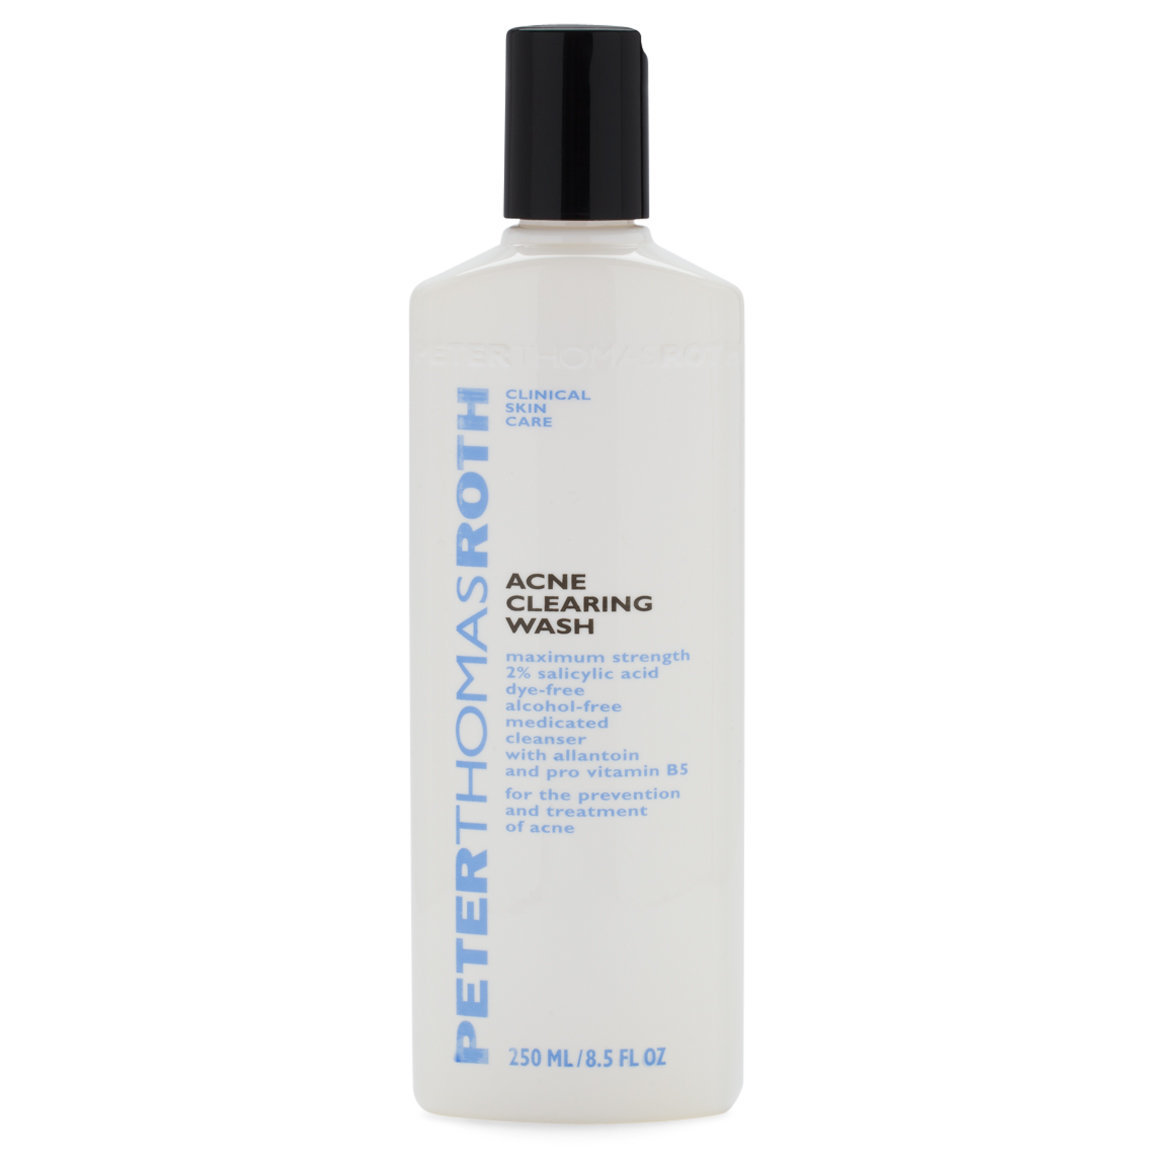 Peter Thomas Roth Acne Clearing Wash product swatch.